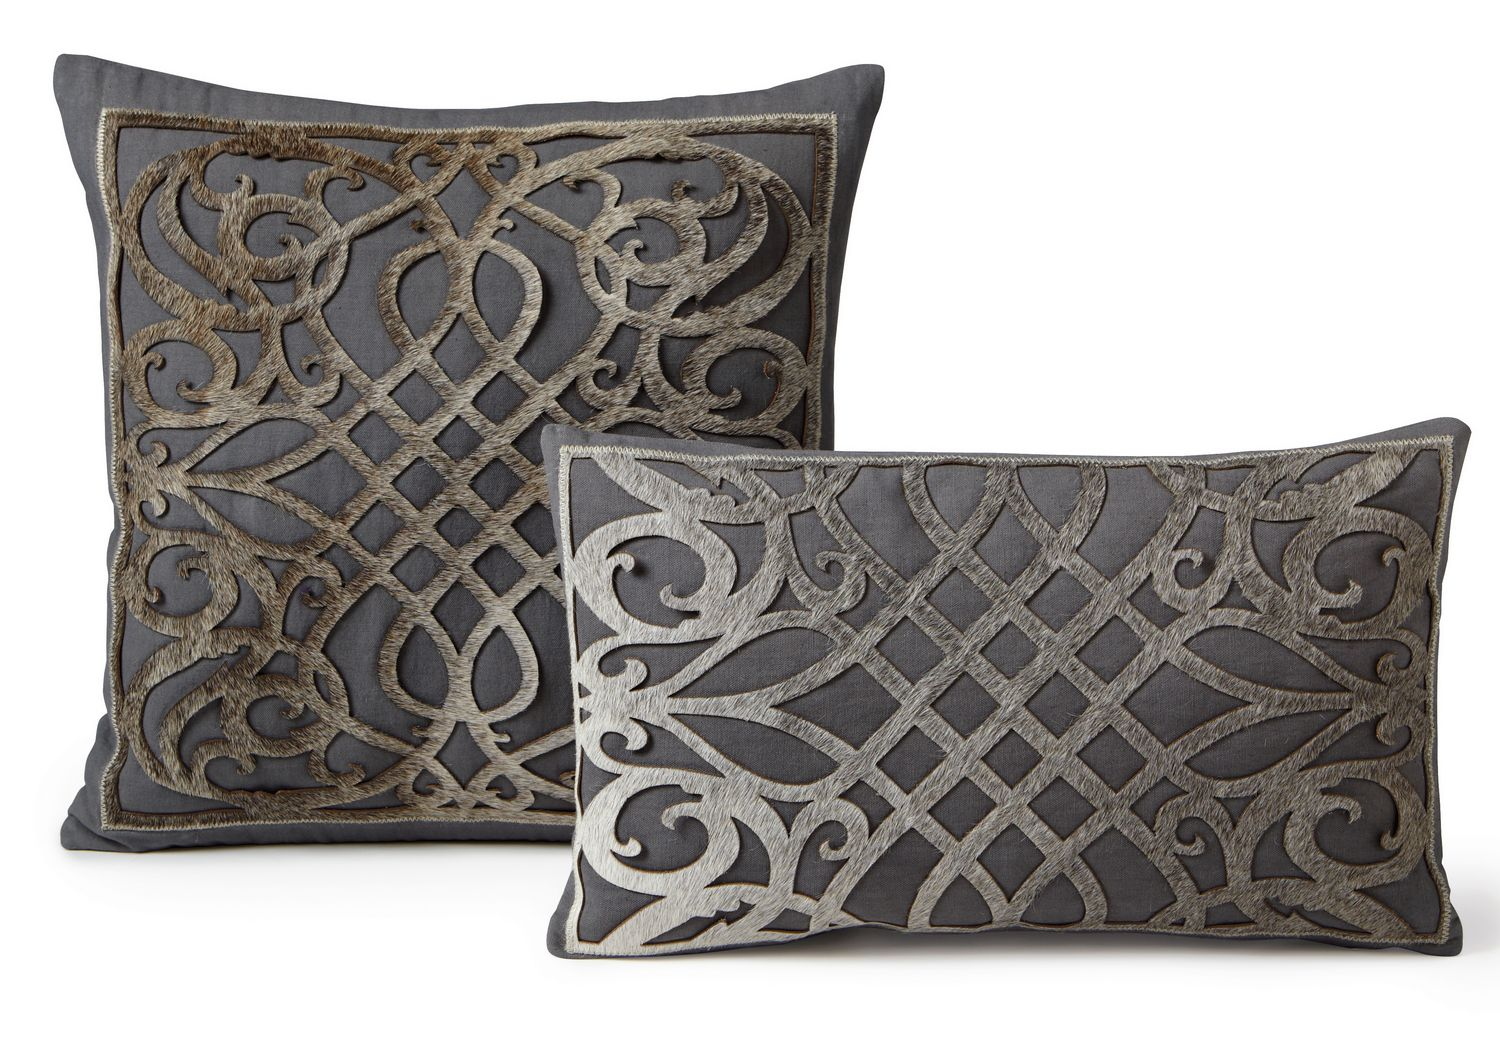 Fibre by Auskin Cowhide Dame Decorative Pillows